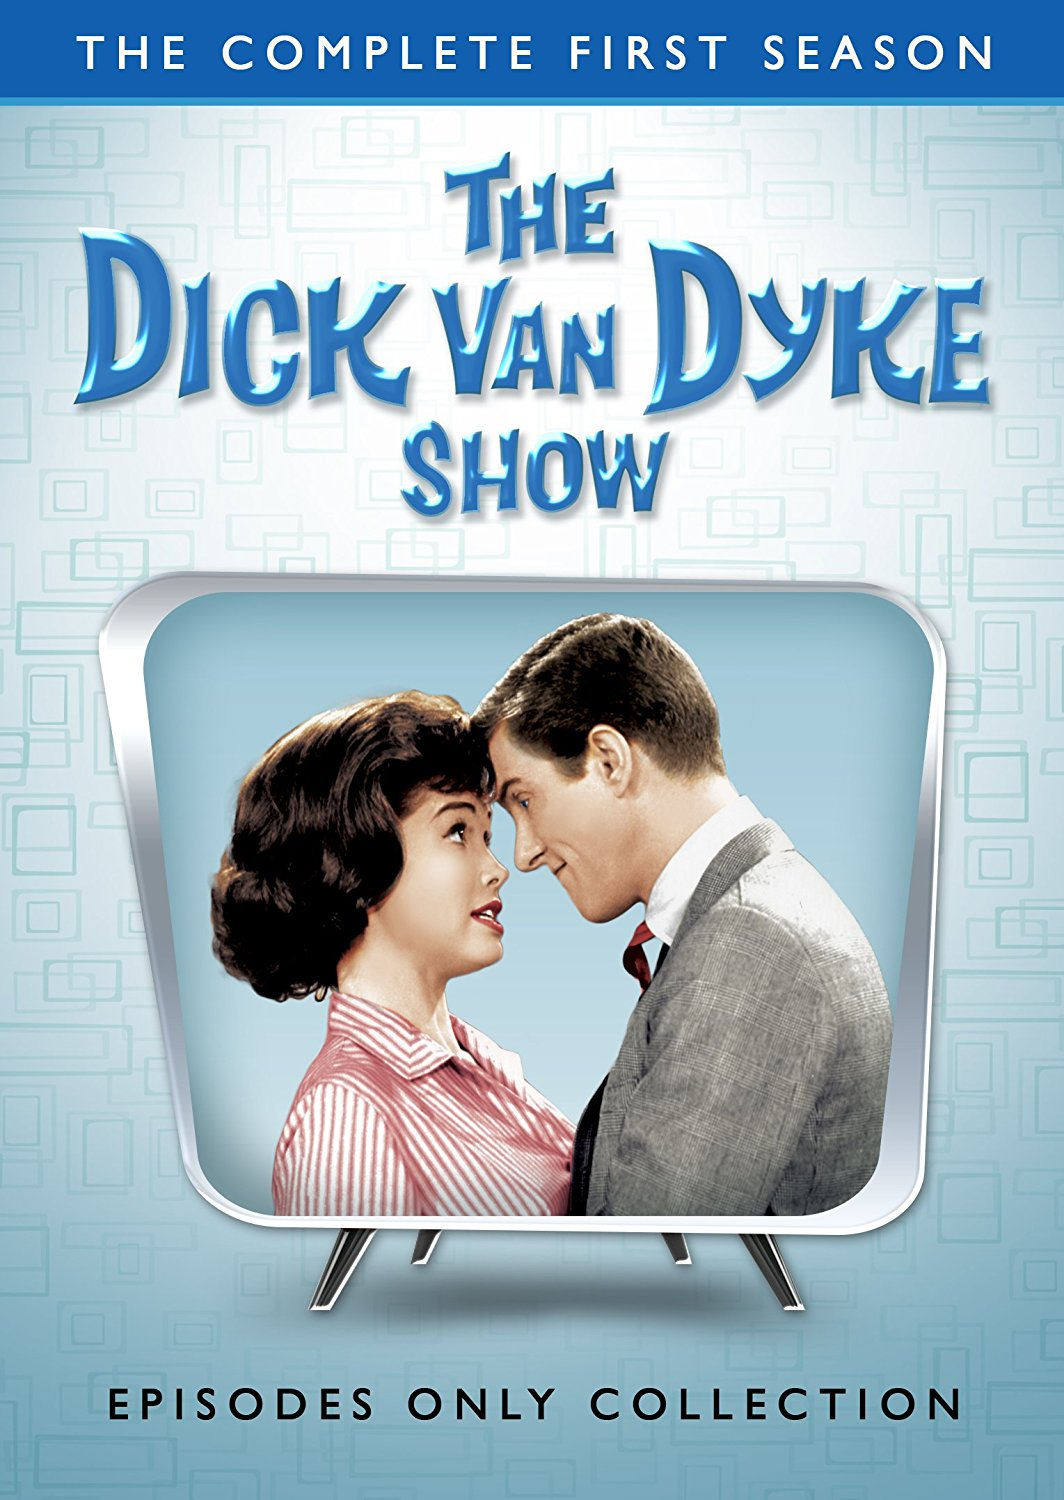 The Dick Van Dyke Show: Complete First Season